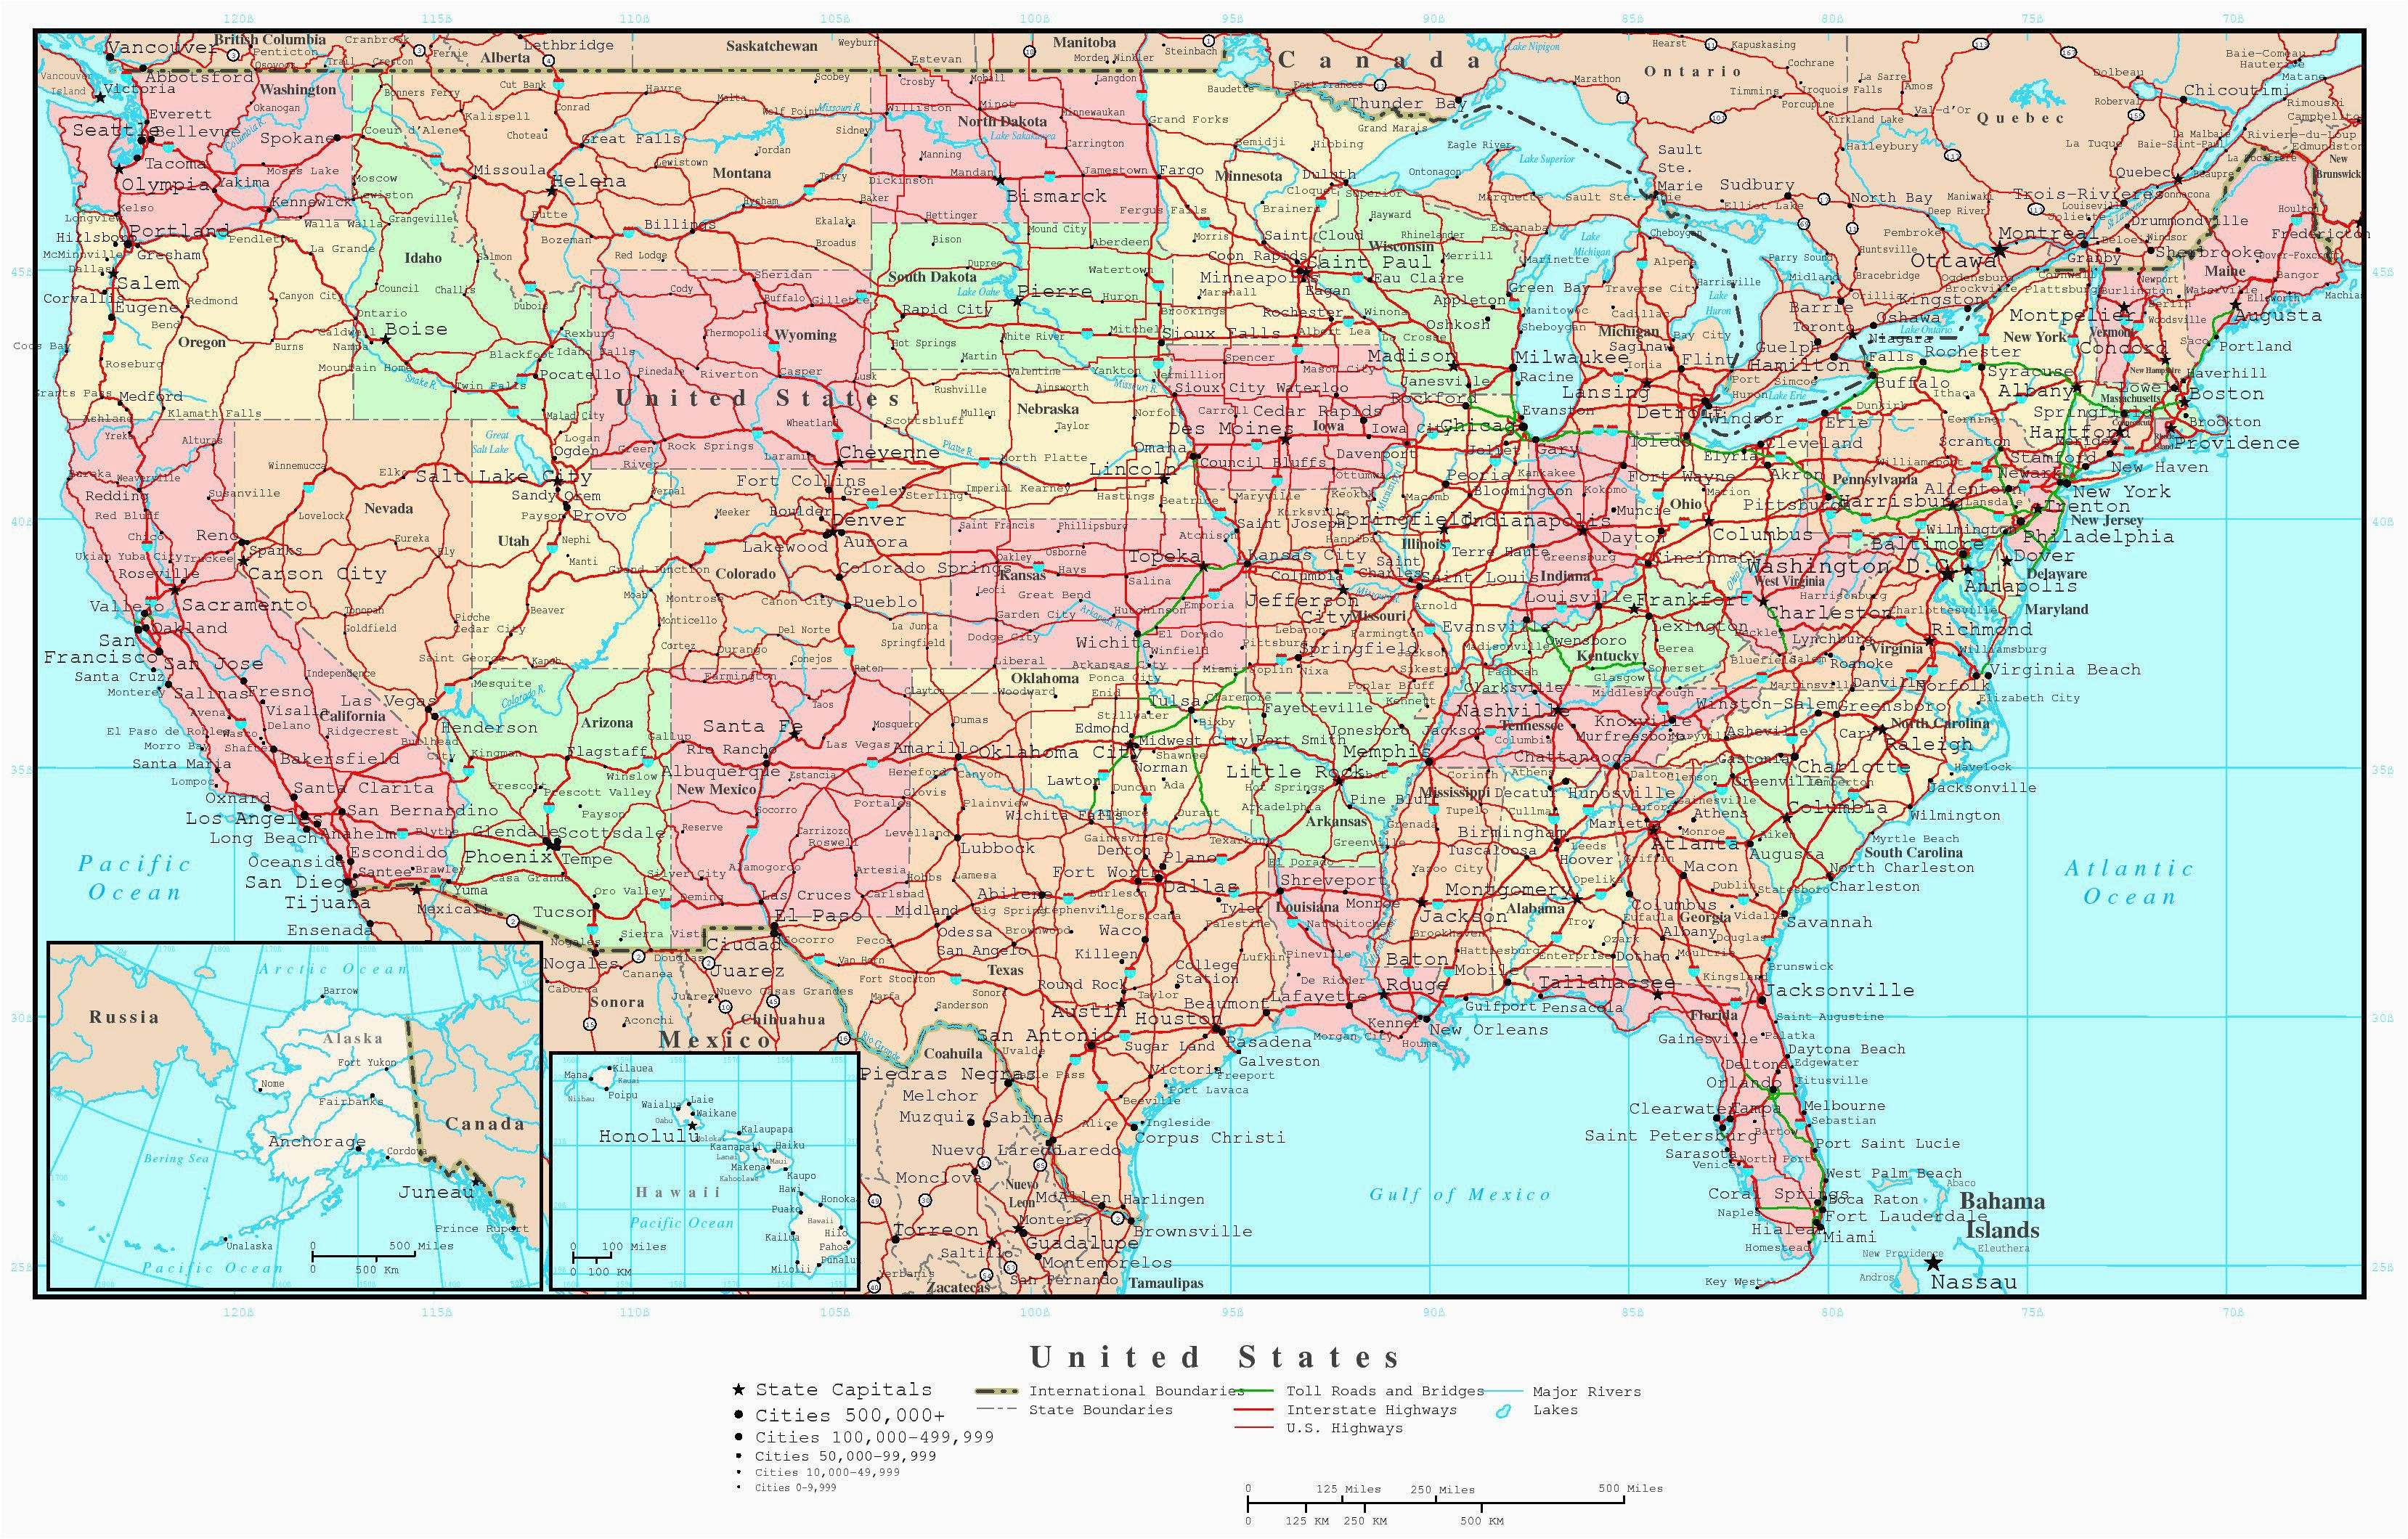 Map Of California Highway 99.Map Of California Interstates United States Map And Interstates New